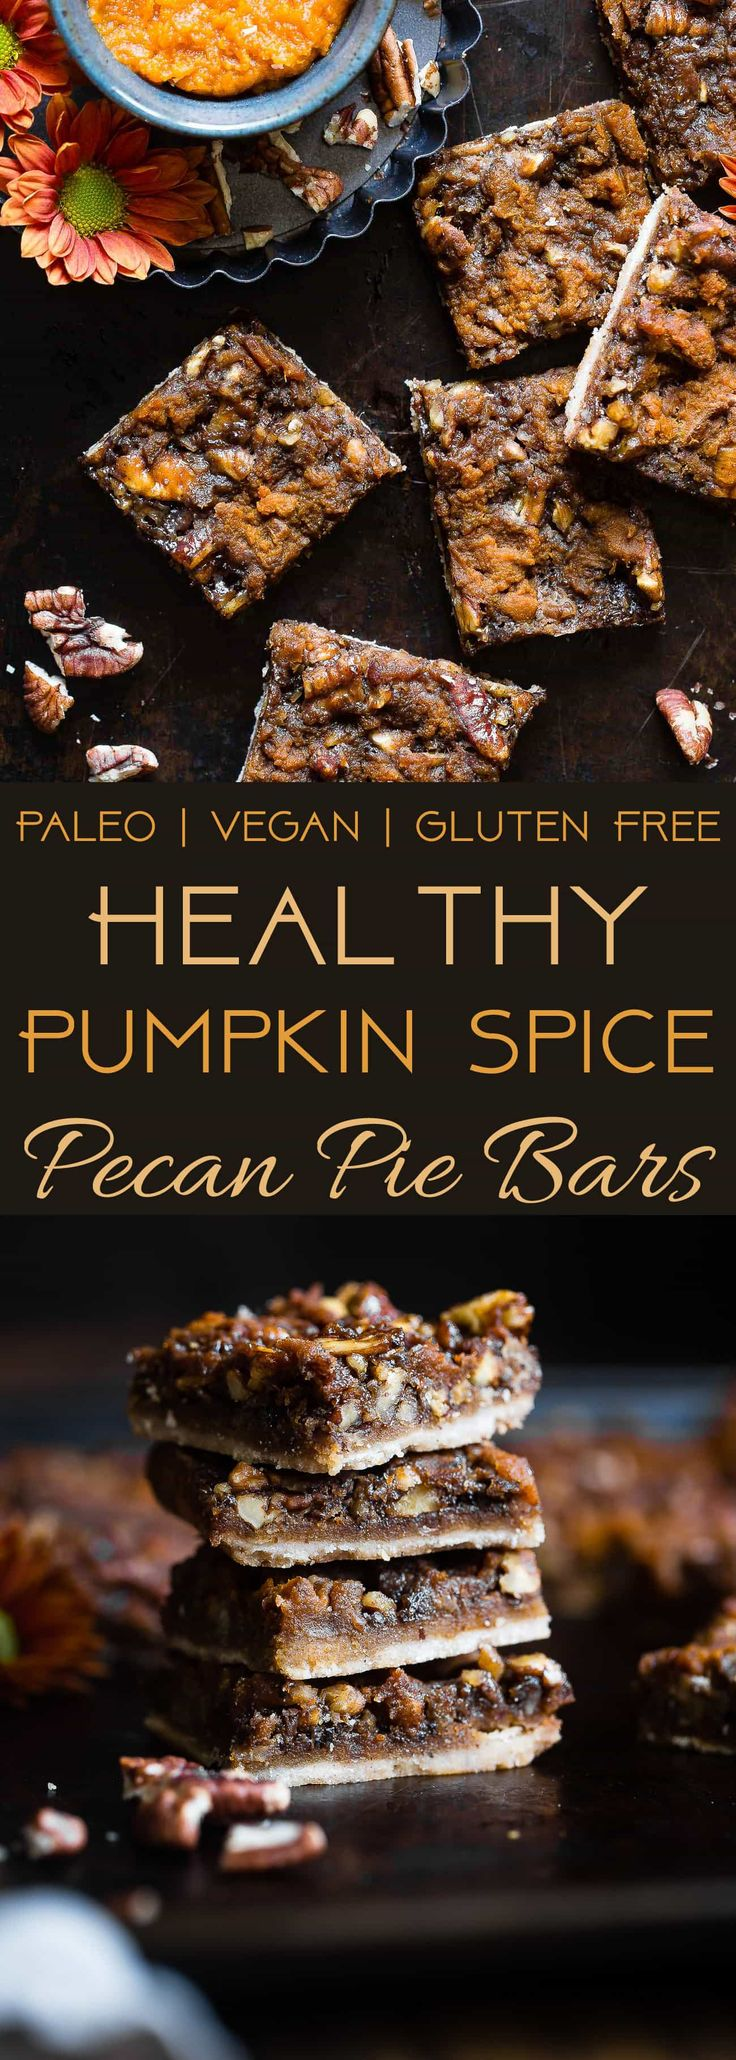 Pumpkin Spice Vegan Pecan Pie Bars - These easy, healthy pecan pie bars are only 8 ingredients and have a pumpkin spice spin! A gluten/grain/dairy/egg free dessert for Thanksgiving that's paleo friendly! | Foodfaithfitness.com | @FoodFaithFit |